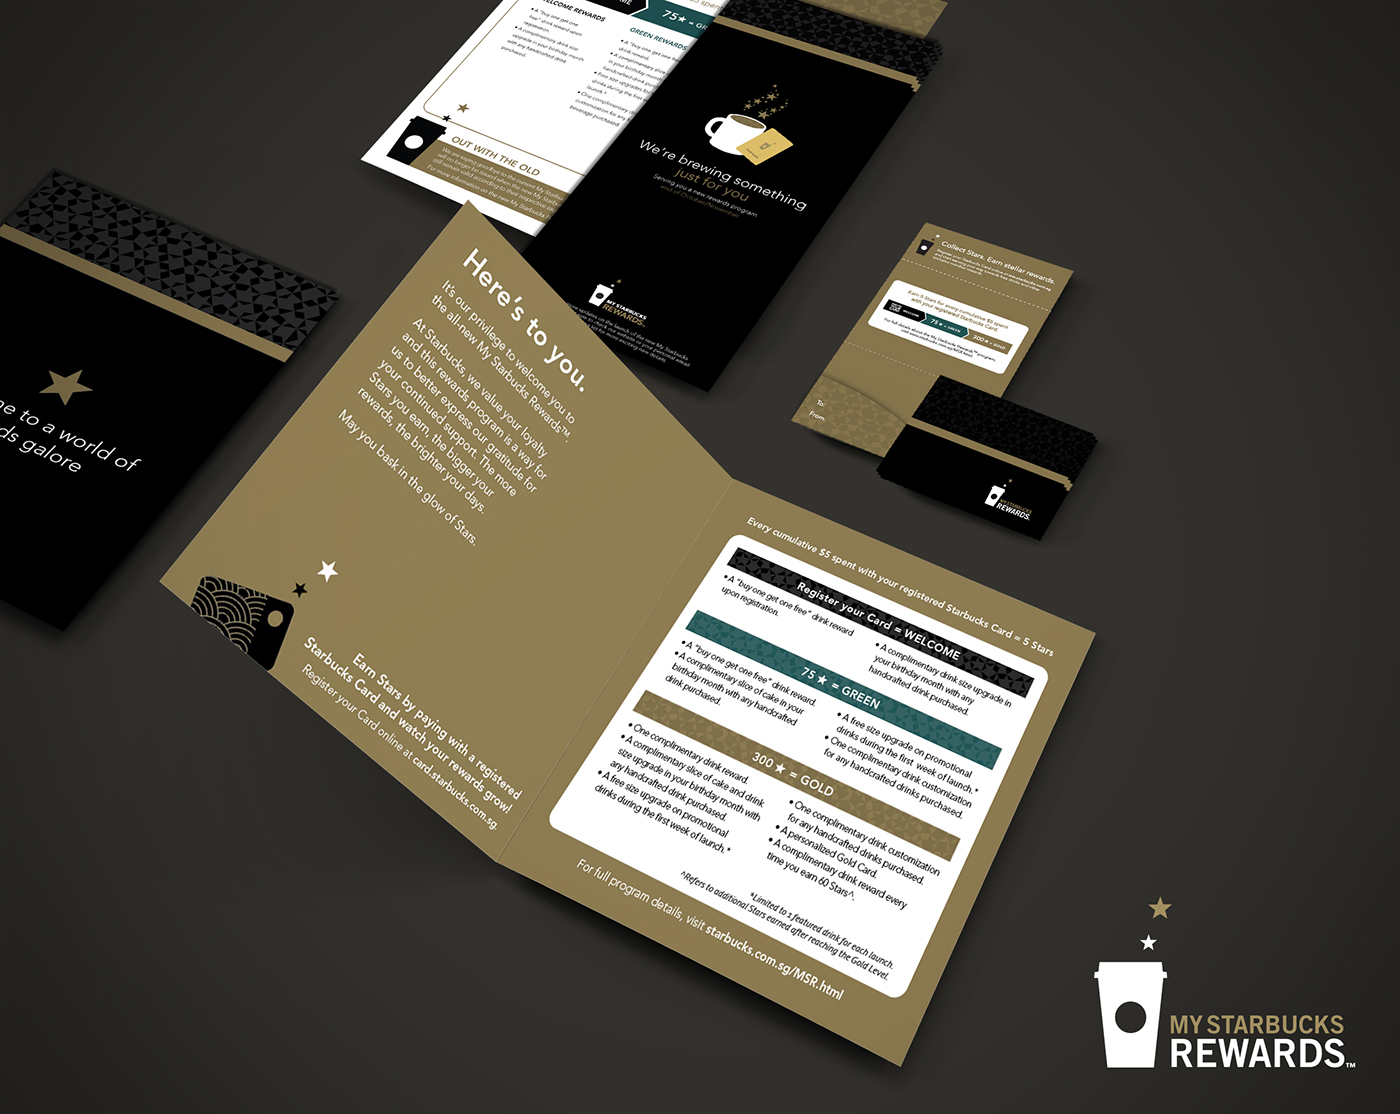 My Starbucks Rewards Sg On Behance